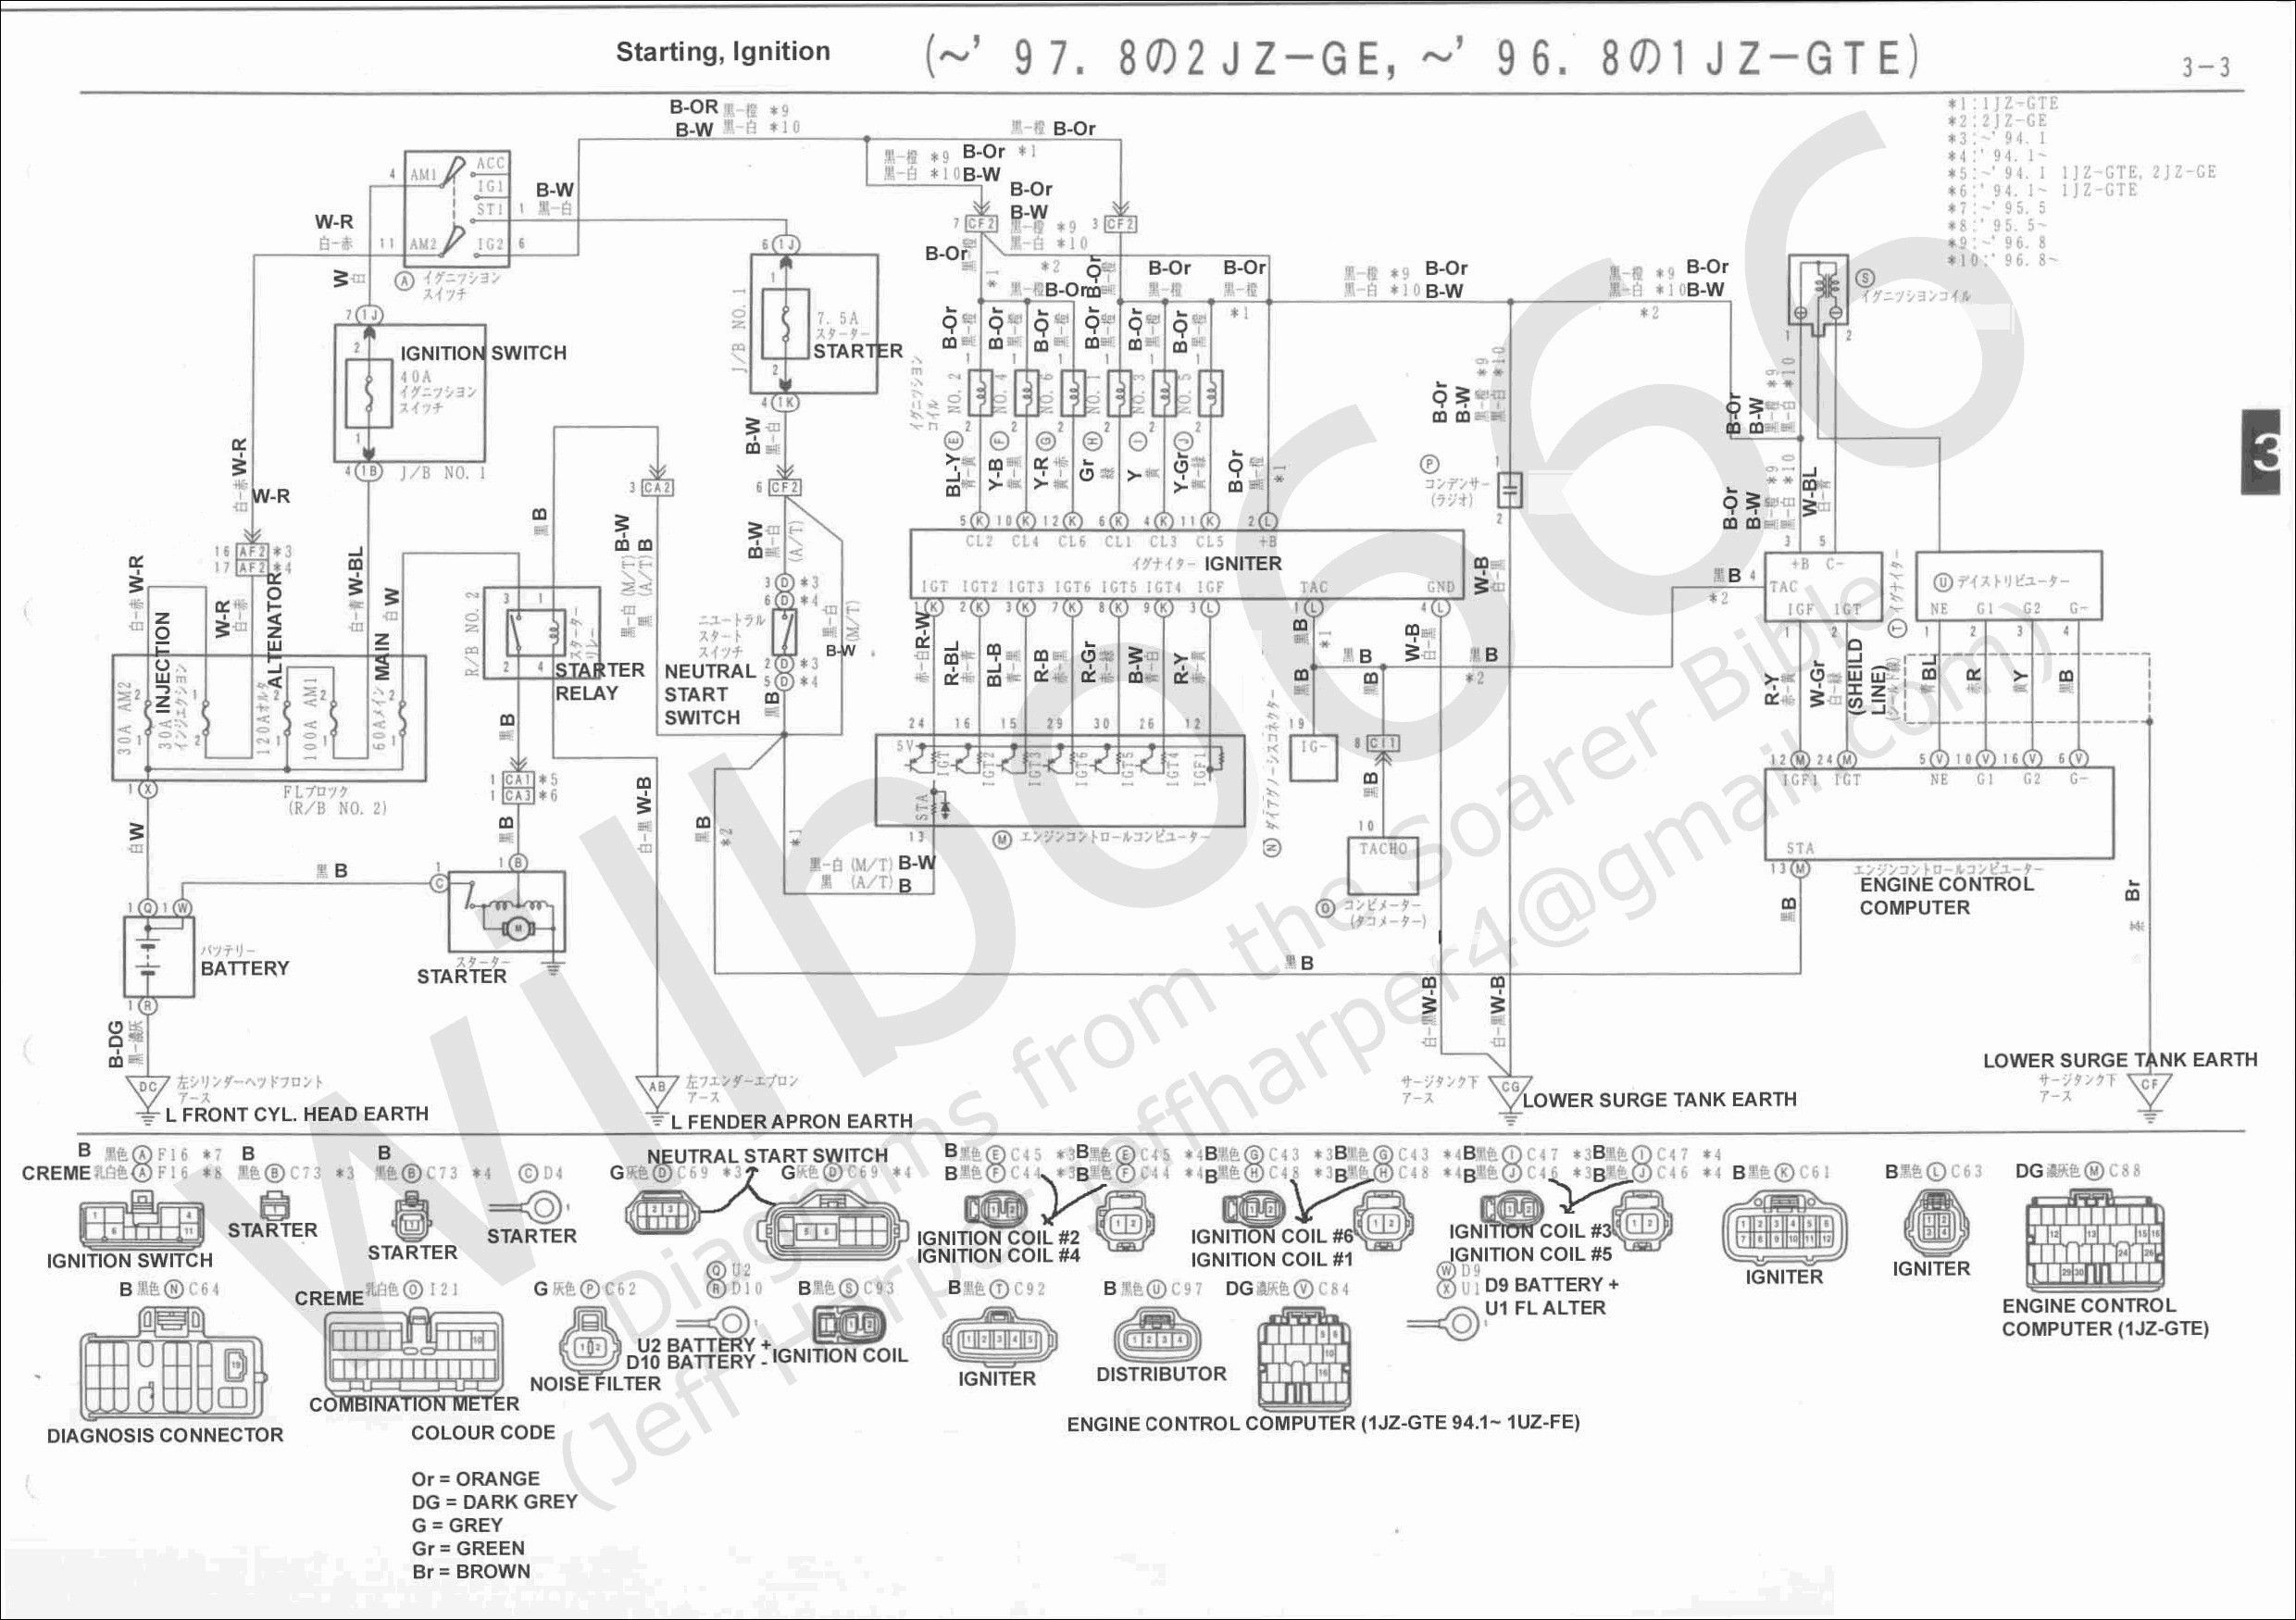 Awesome Td42 Alternator Wiring Diagram #diagrams ... on army jeep, black jeep, white jeep, pink jeep,